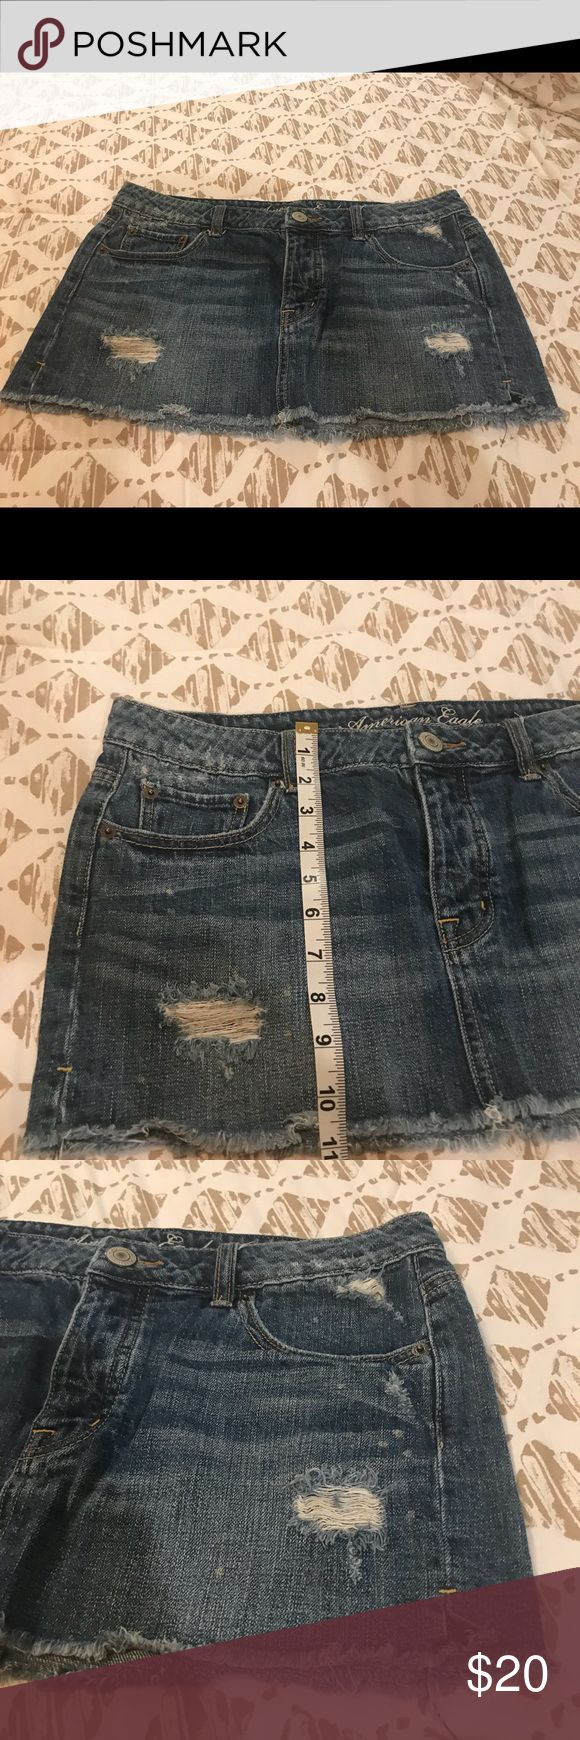 Sexy** Mini Medium Wash Denim Jean Skirt Size 8 Used once in excellent condition Looking for a new home 🏡   Serious fit, comfort, & style. Your skirt has never fit or felt better. Super soft, super comfortable, super you!Curvy booty or straight hips, this skirt hugs every body. Sooo Soft.. Machine Wash   🎀Size Chart Picture Included🎀  🌻NO TRADES🌻 We guarantee 100% authenticity! My main goal is to get repeat businesses. 🌸Reasonable Offers Only🌸 American Eagle Outfitters Skirts Mini